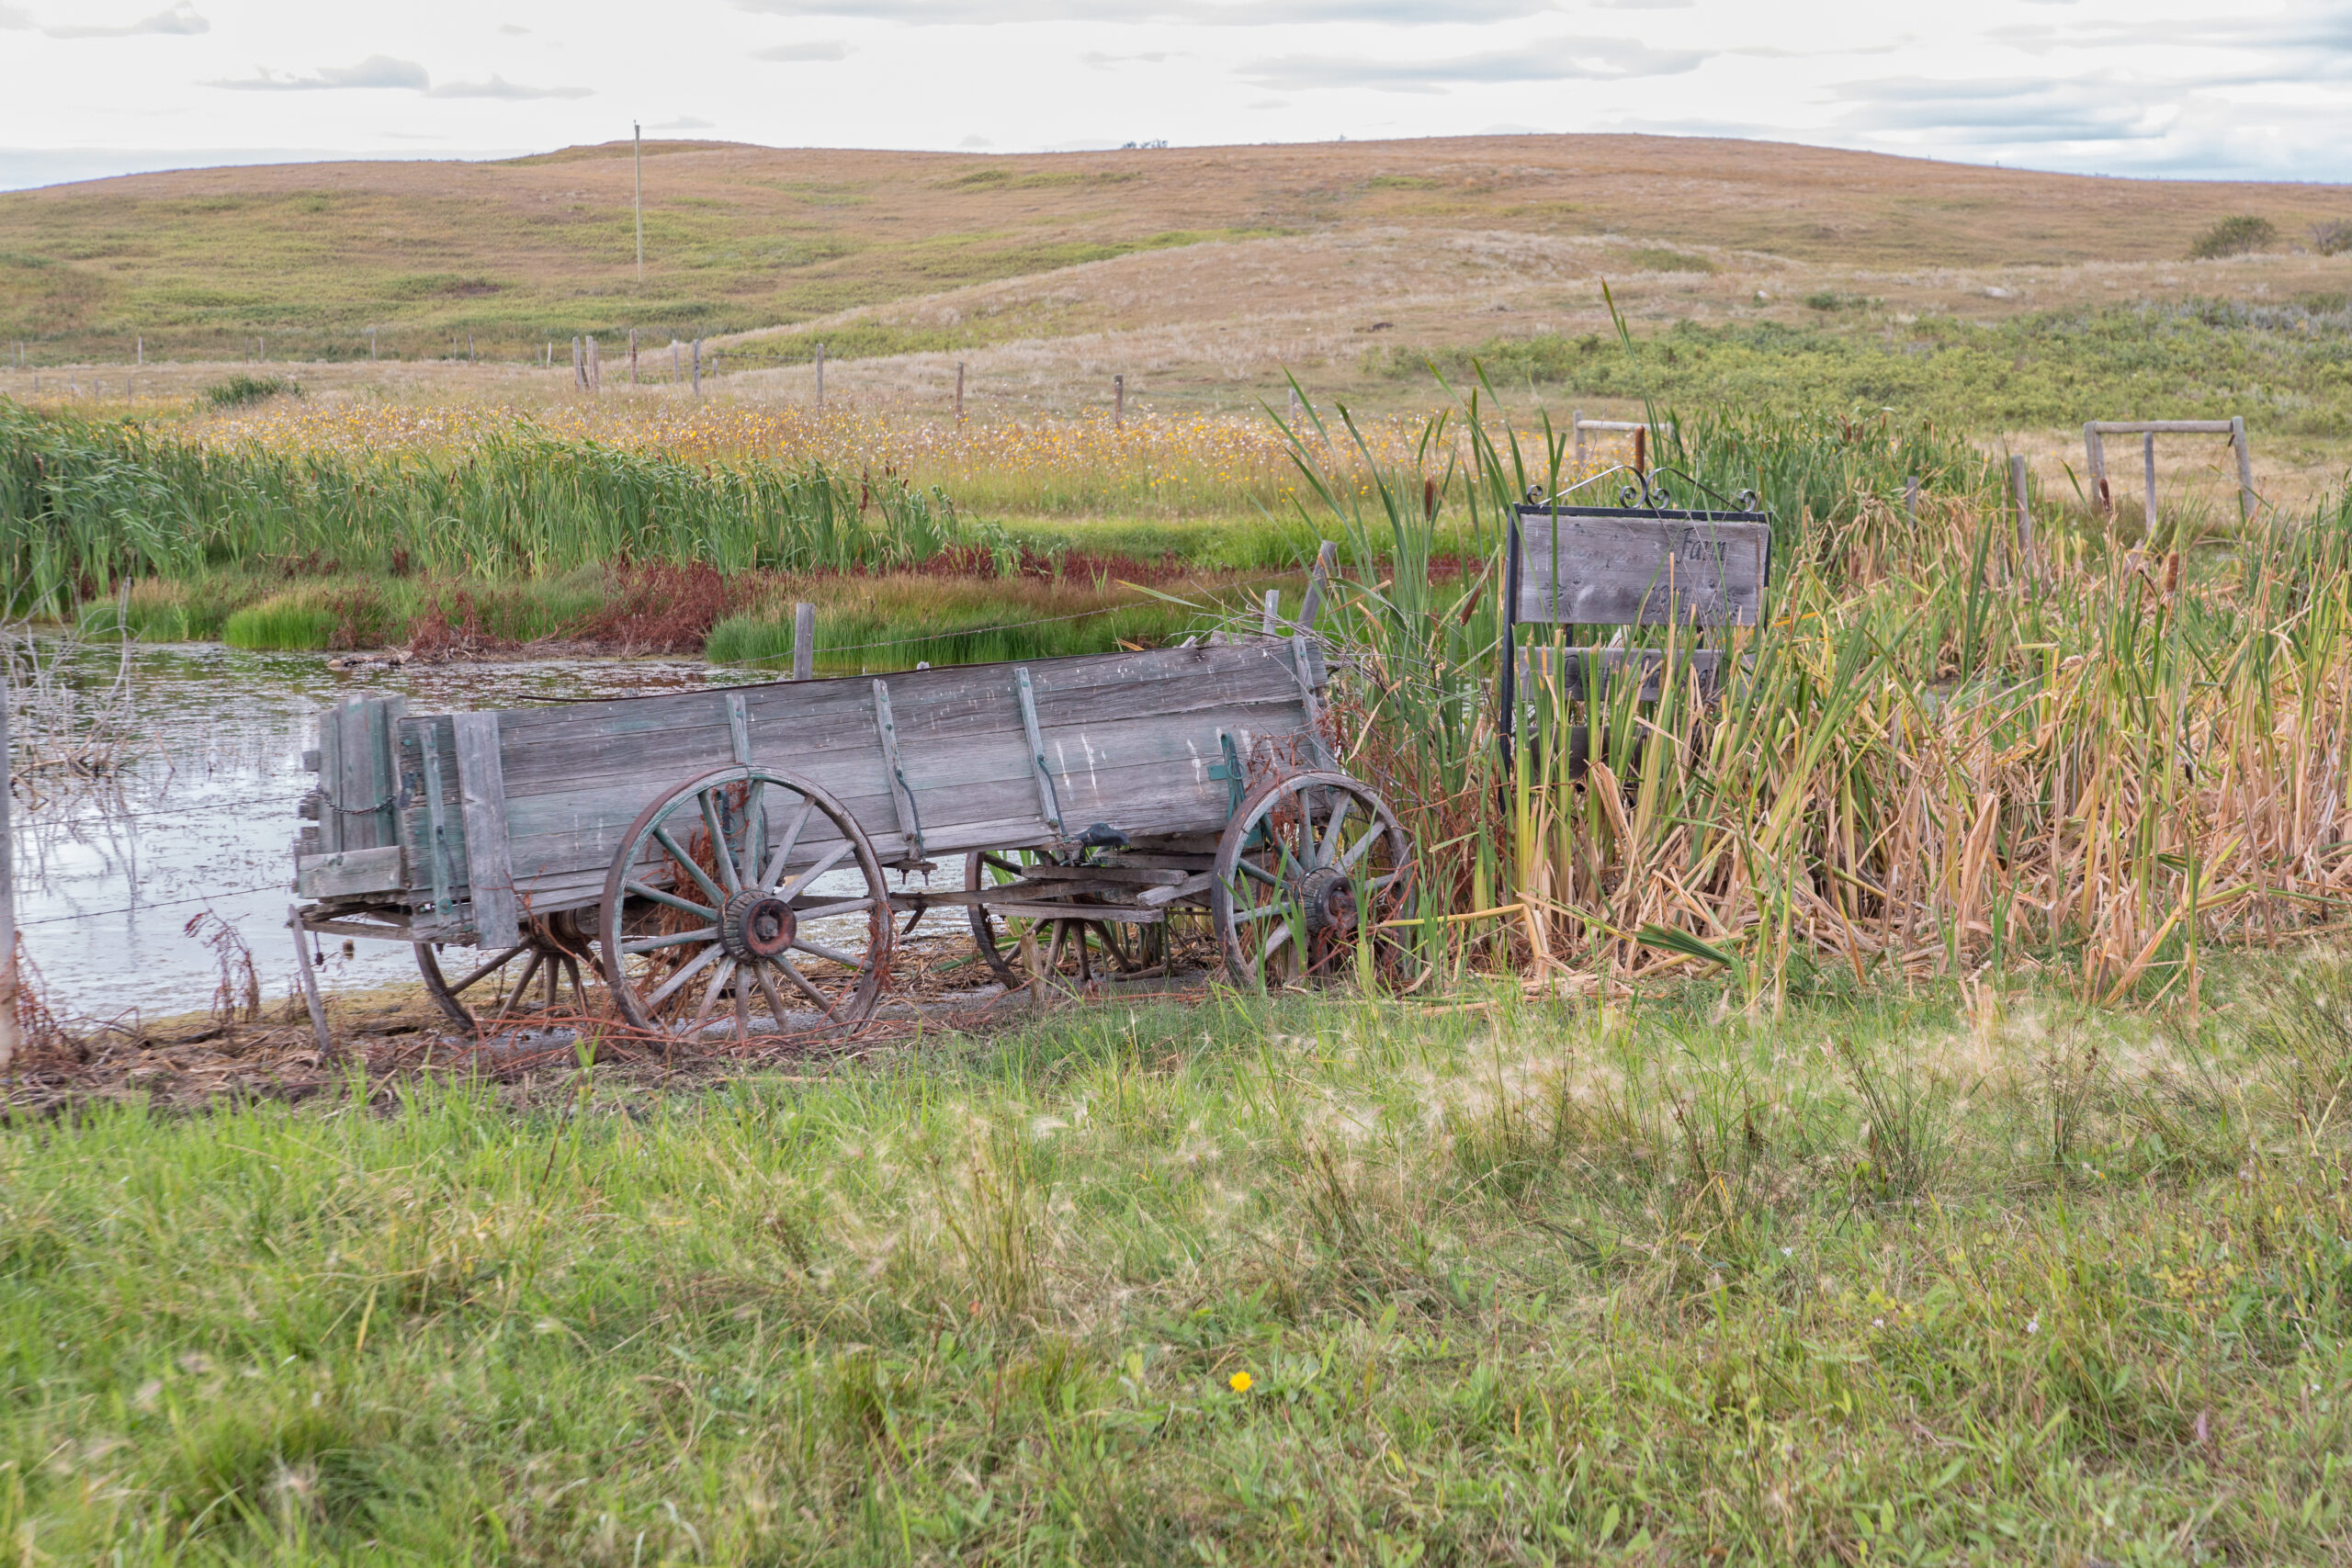 old broken horse drawn wagon sitting by a pond